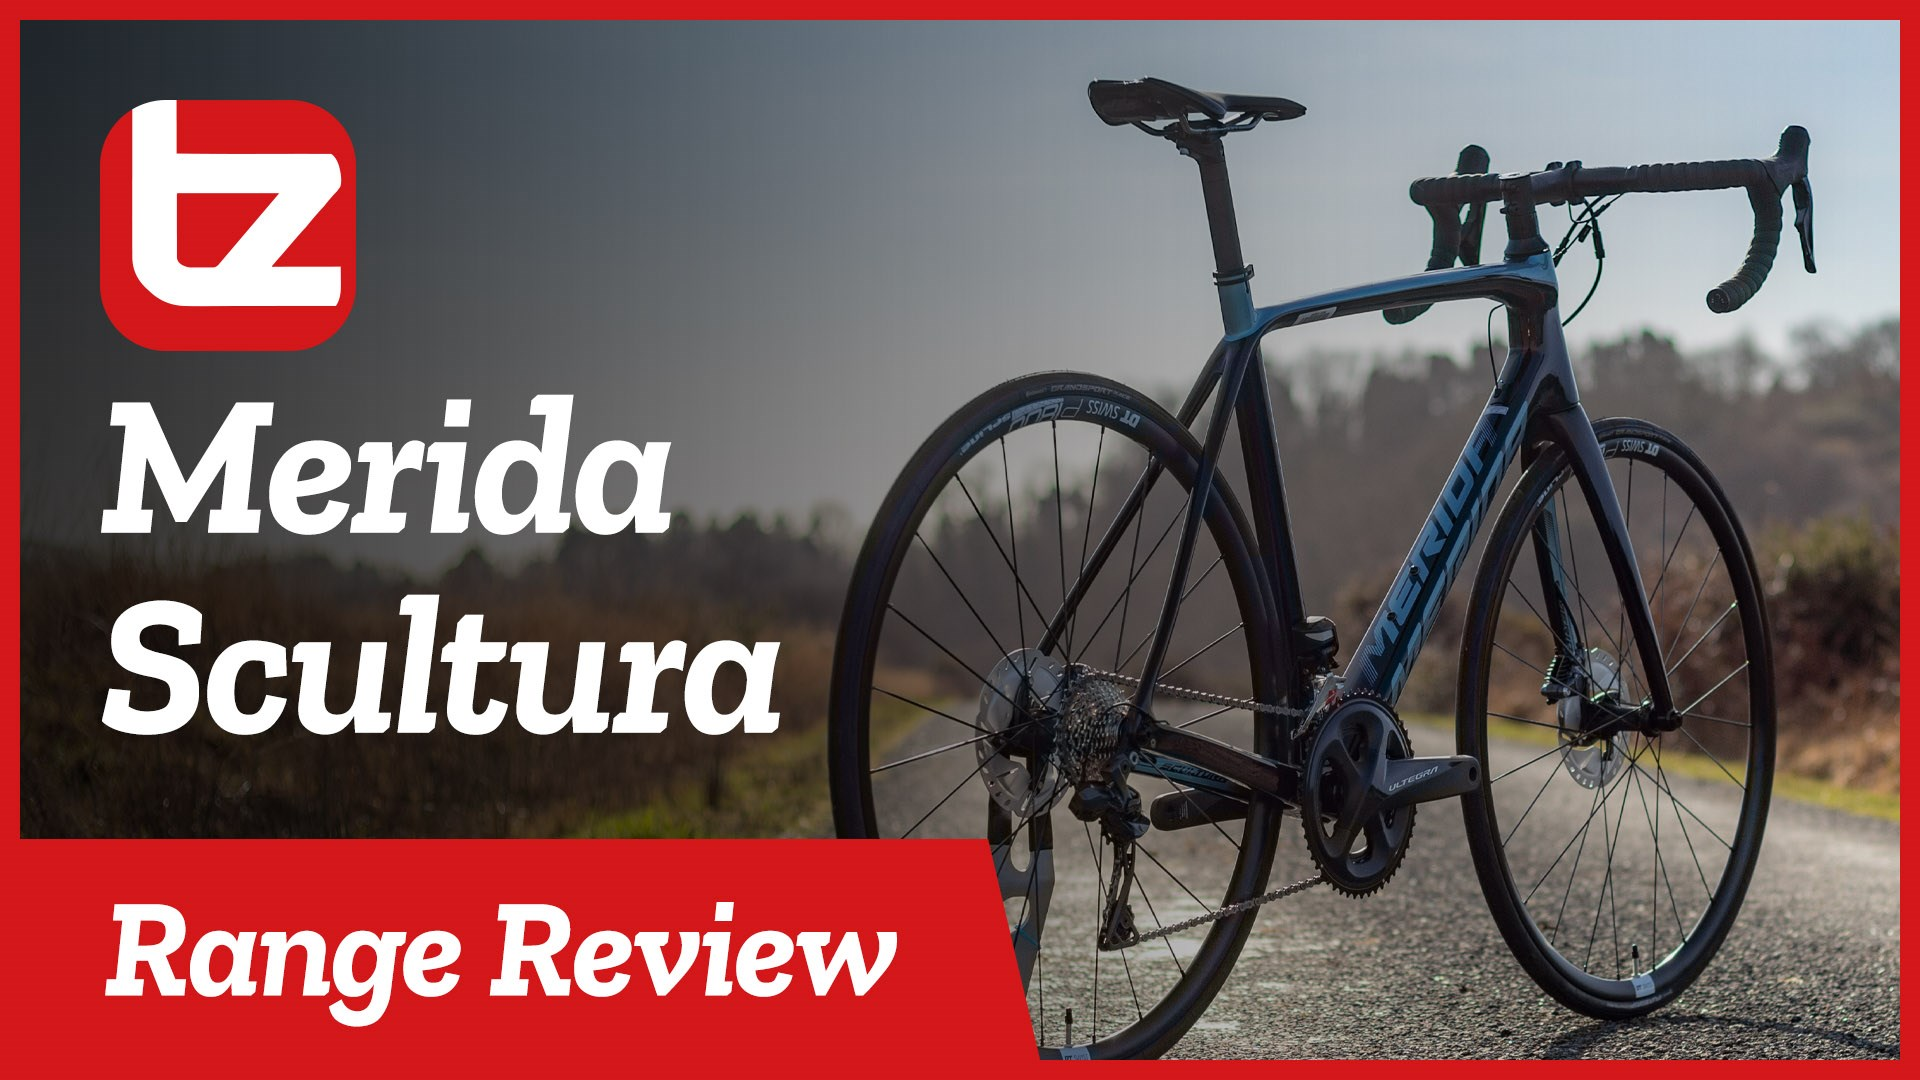 Merida Scultura | Range Review | Tredz Bikes